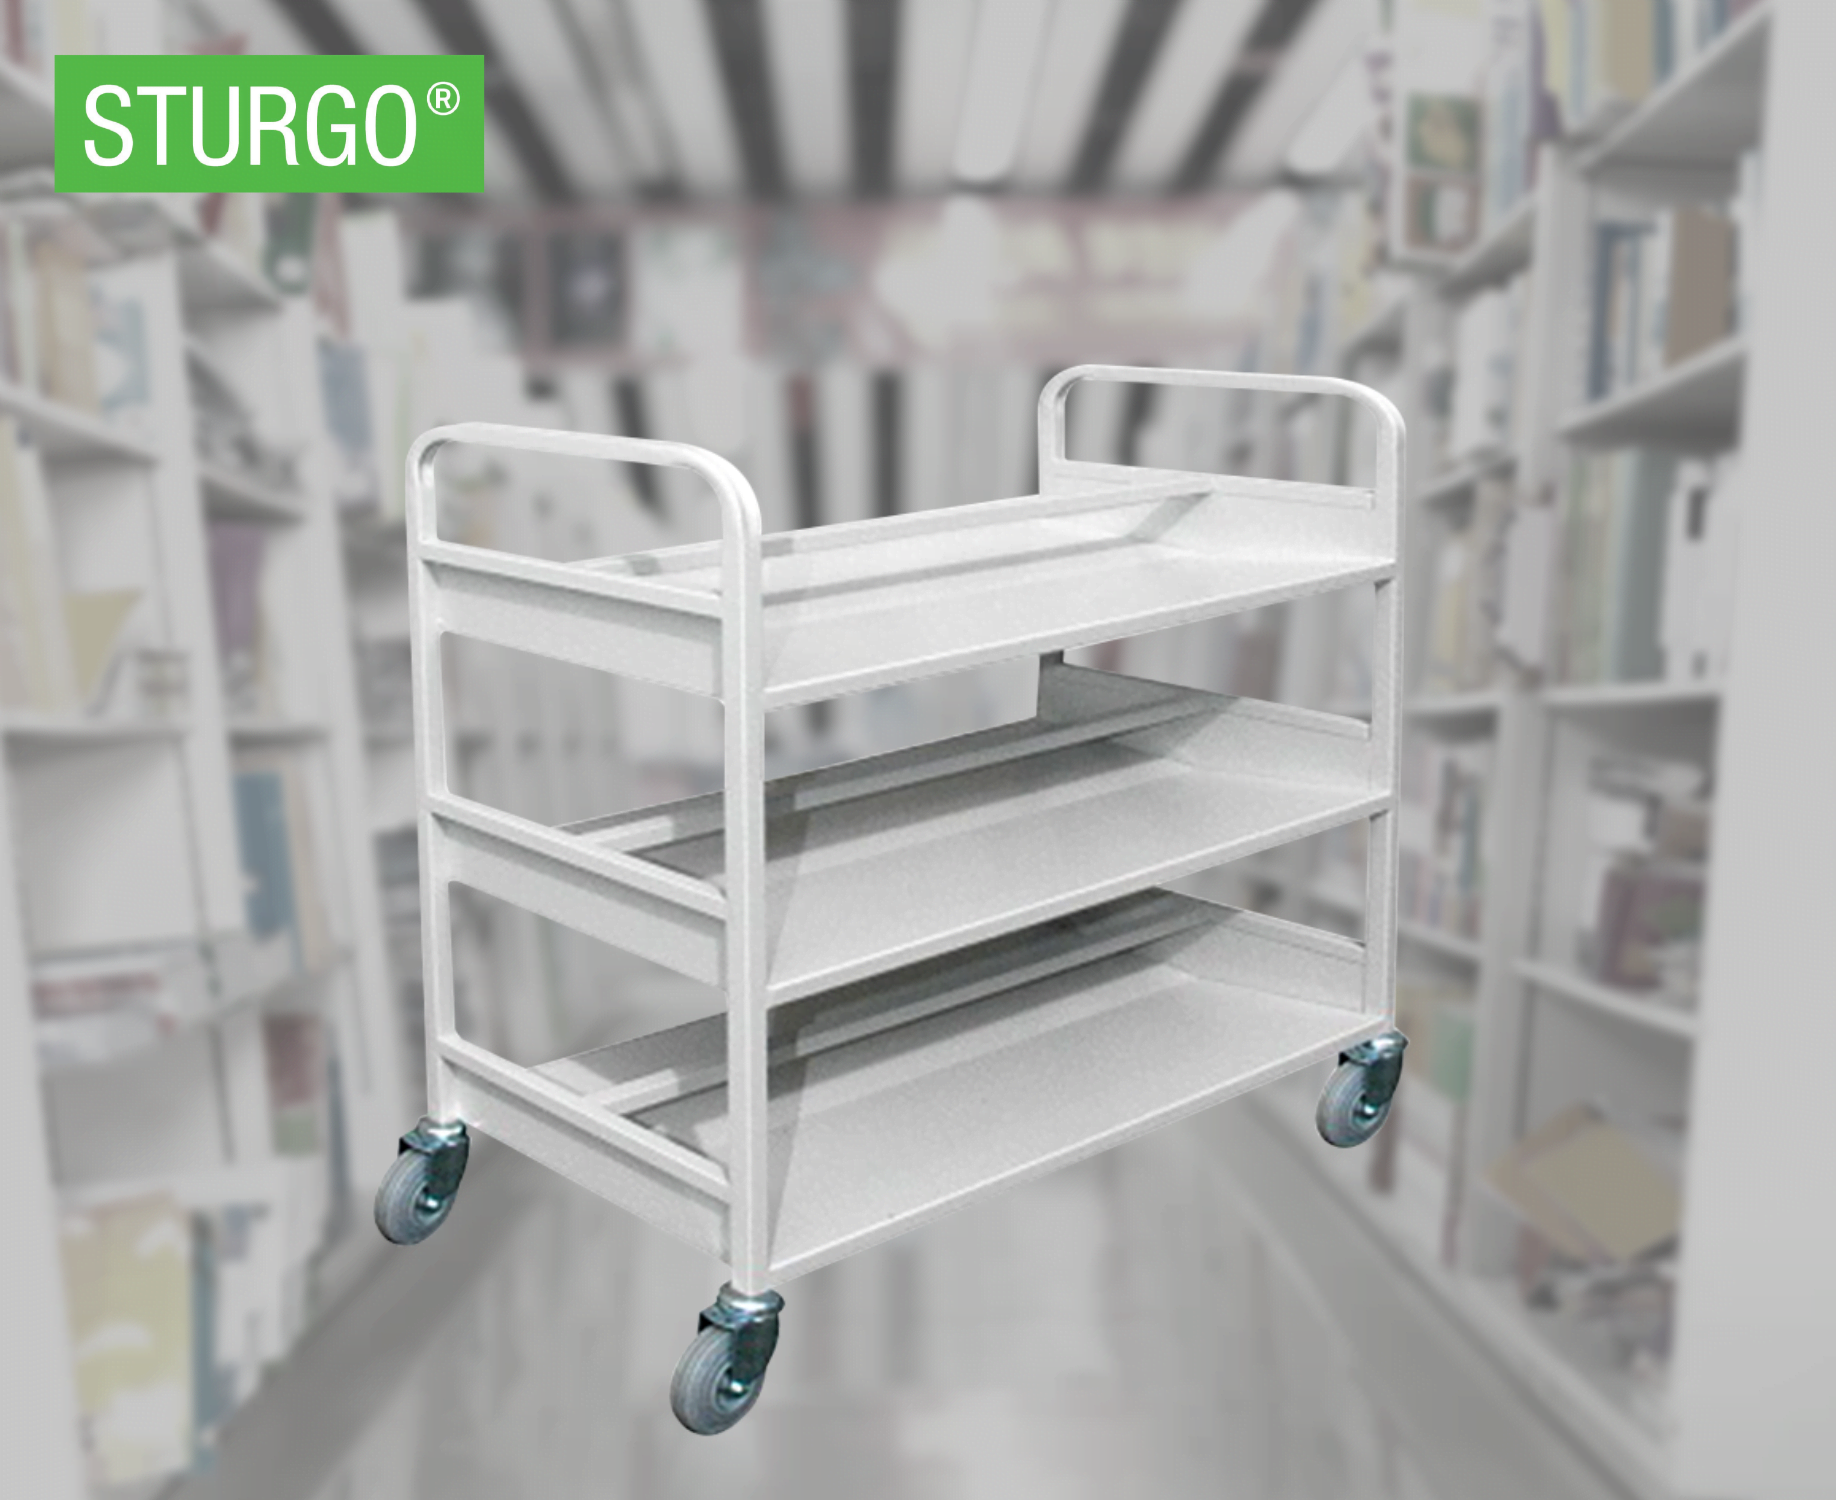 STURGO® Library Trolley